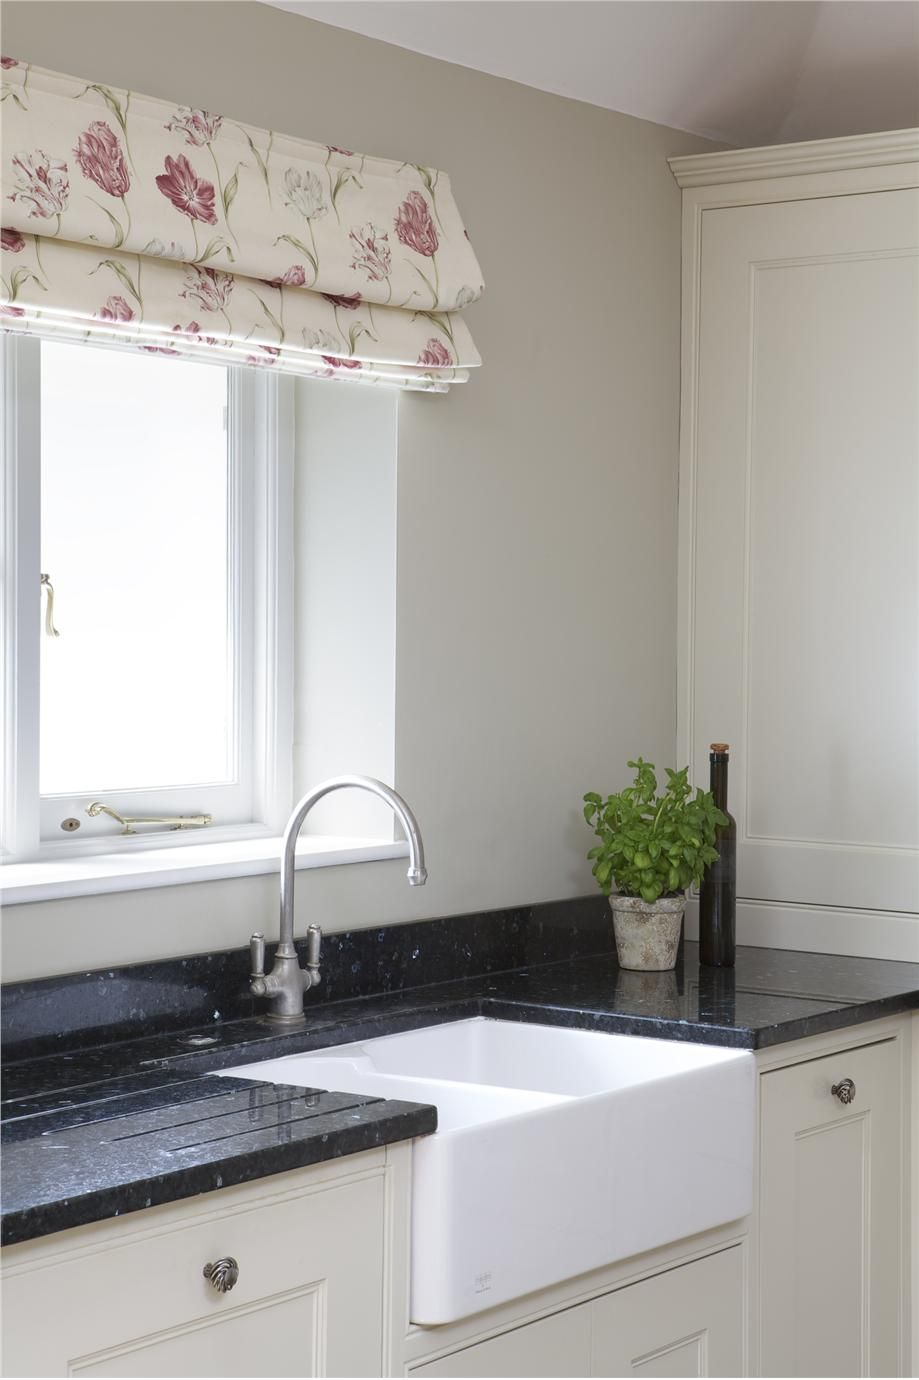 White Kitchen Emulsion farrow & ball inspiration - kitchen with walls in clunch modern